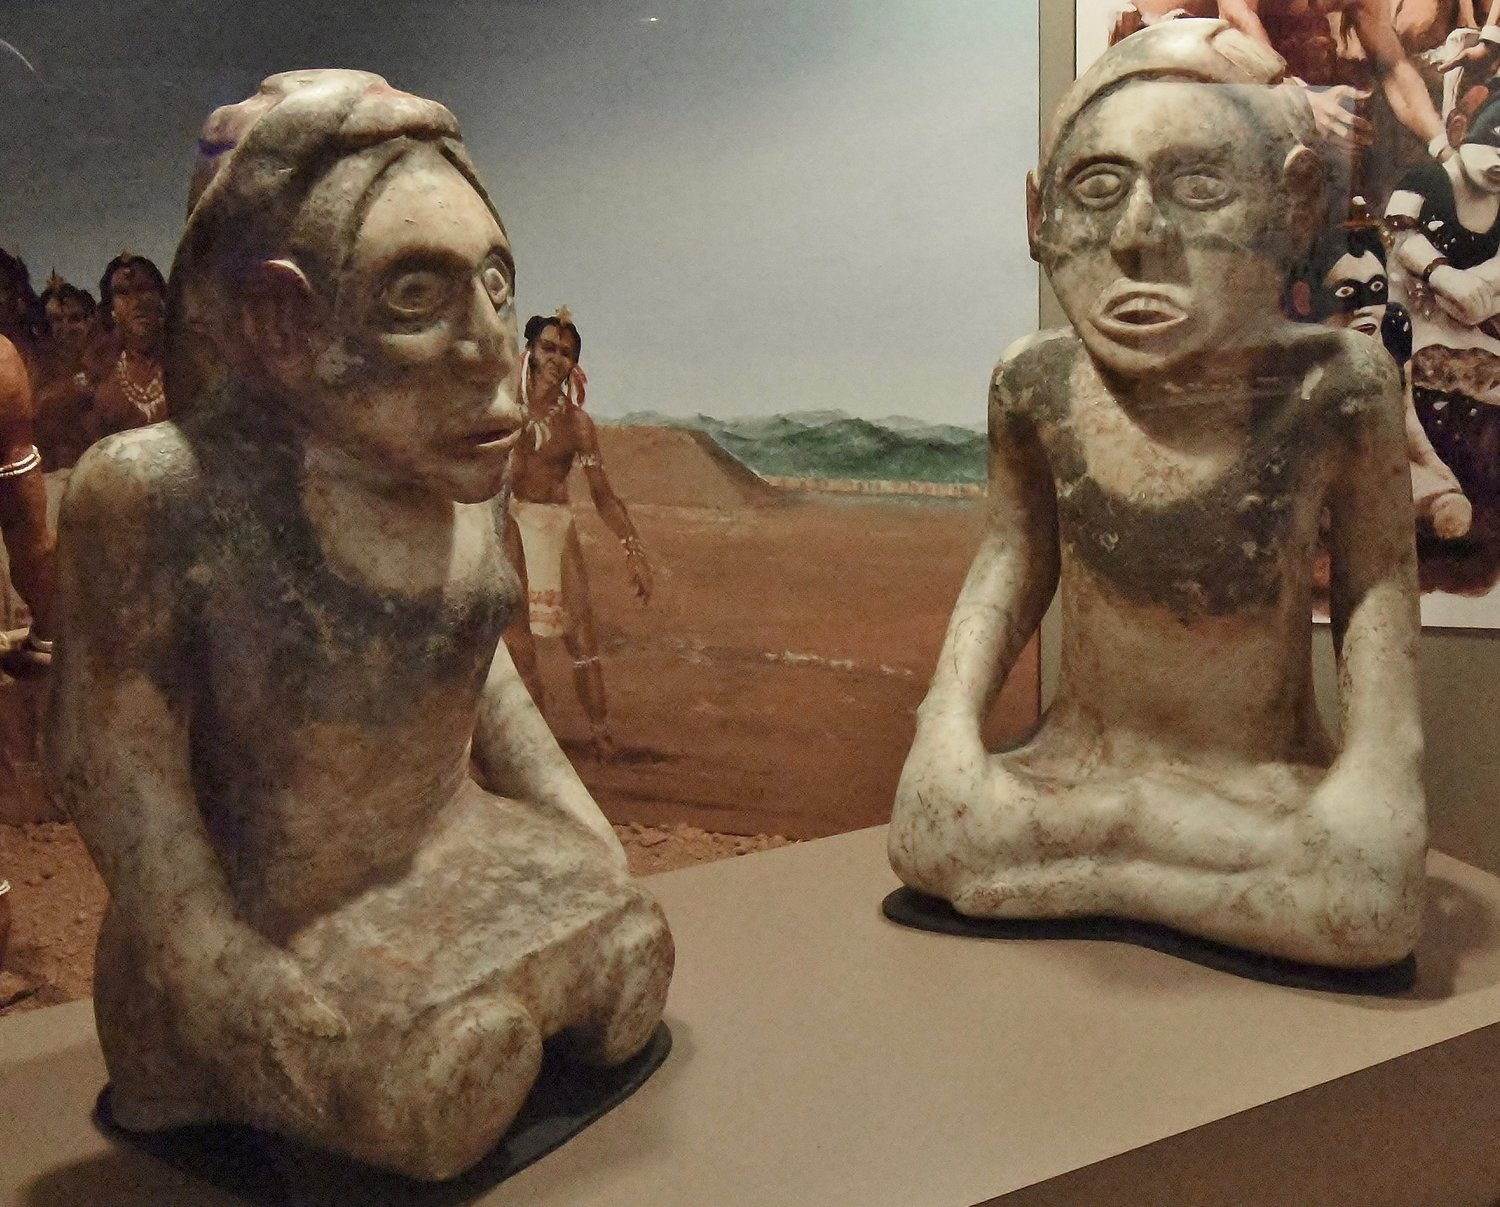 Two hand-carved effigies are displayed in the Etowah Indian Mounds' museum.